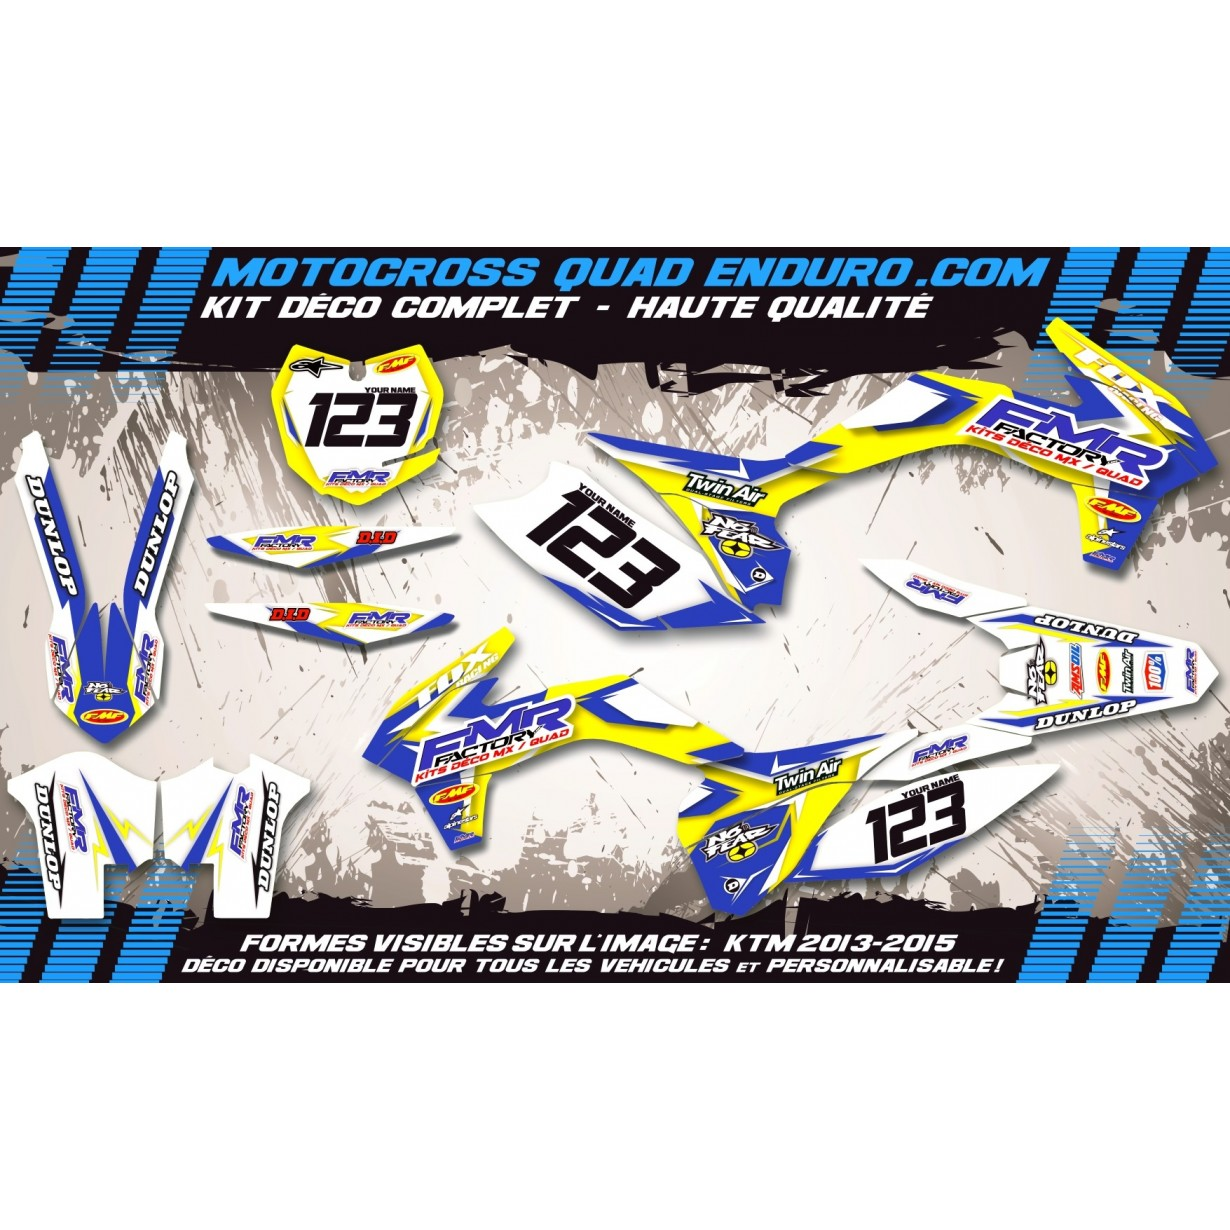 KIT DÉCO Perso MC 03-06 Fmr Factory MA13D